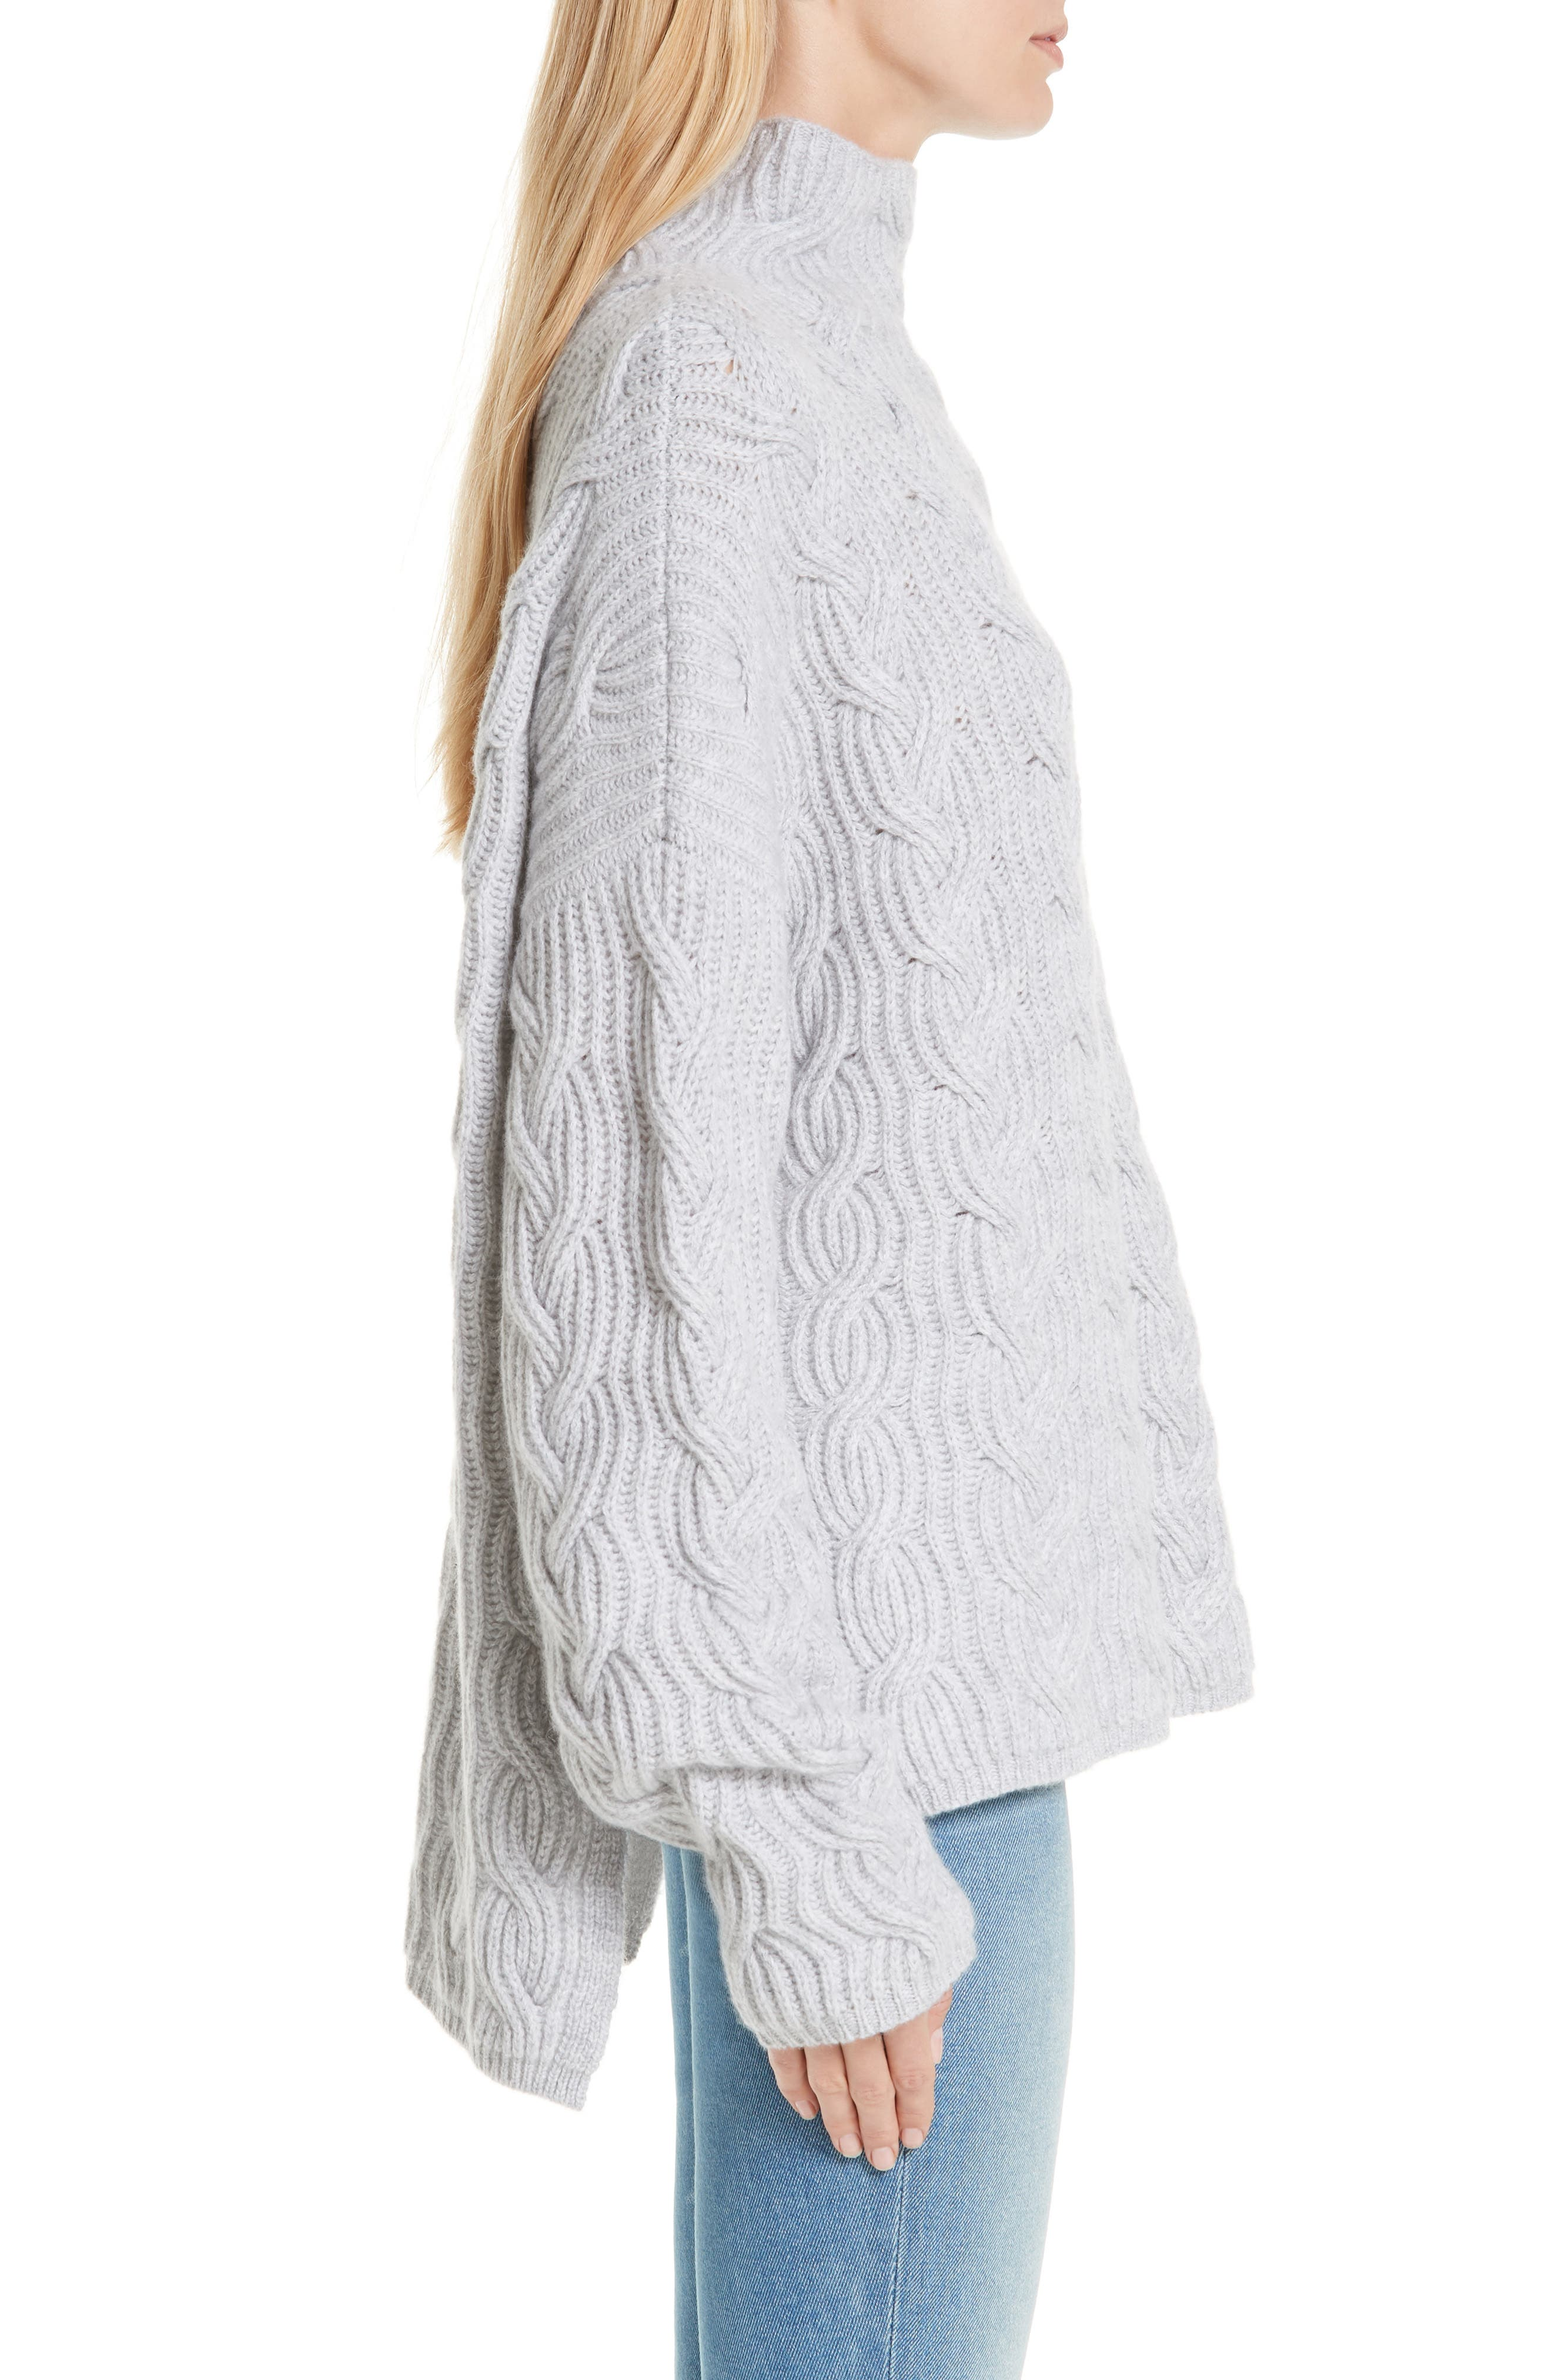 Cable Cashmere Knit Sweater,                             Alternate thumbnail 3, color,                             050